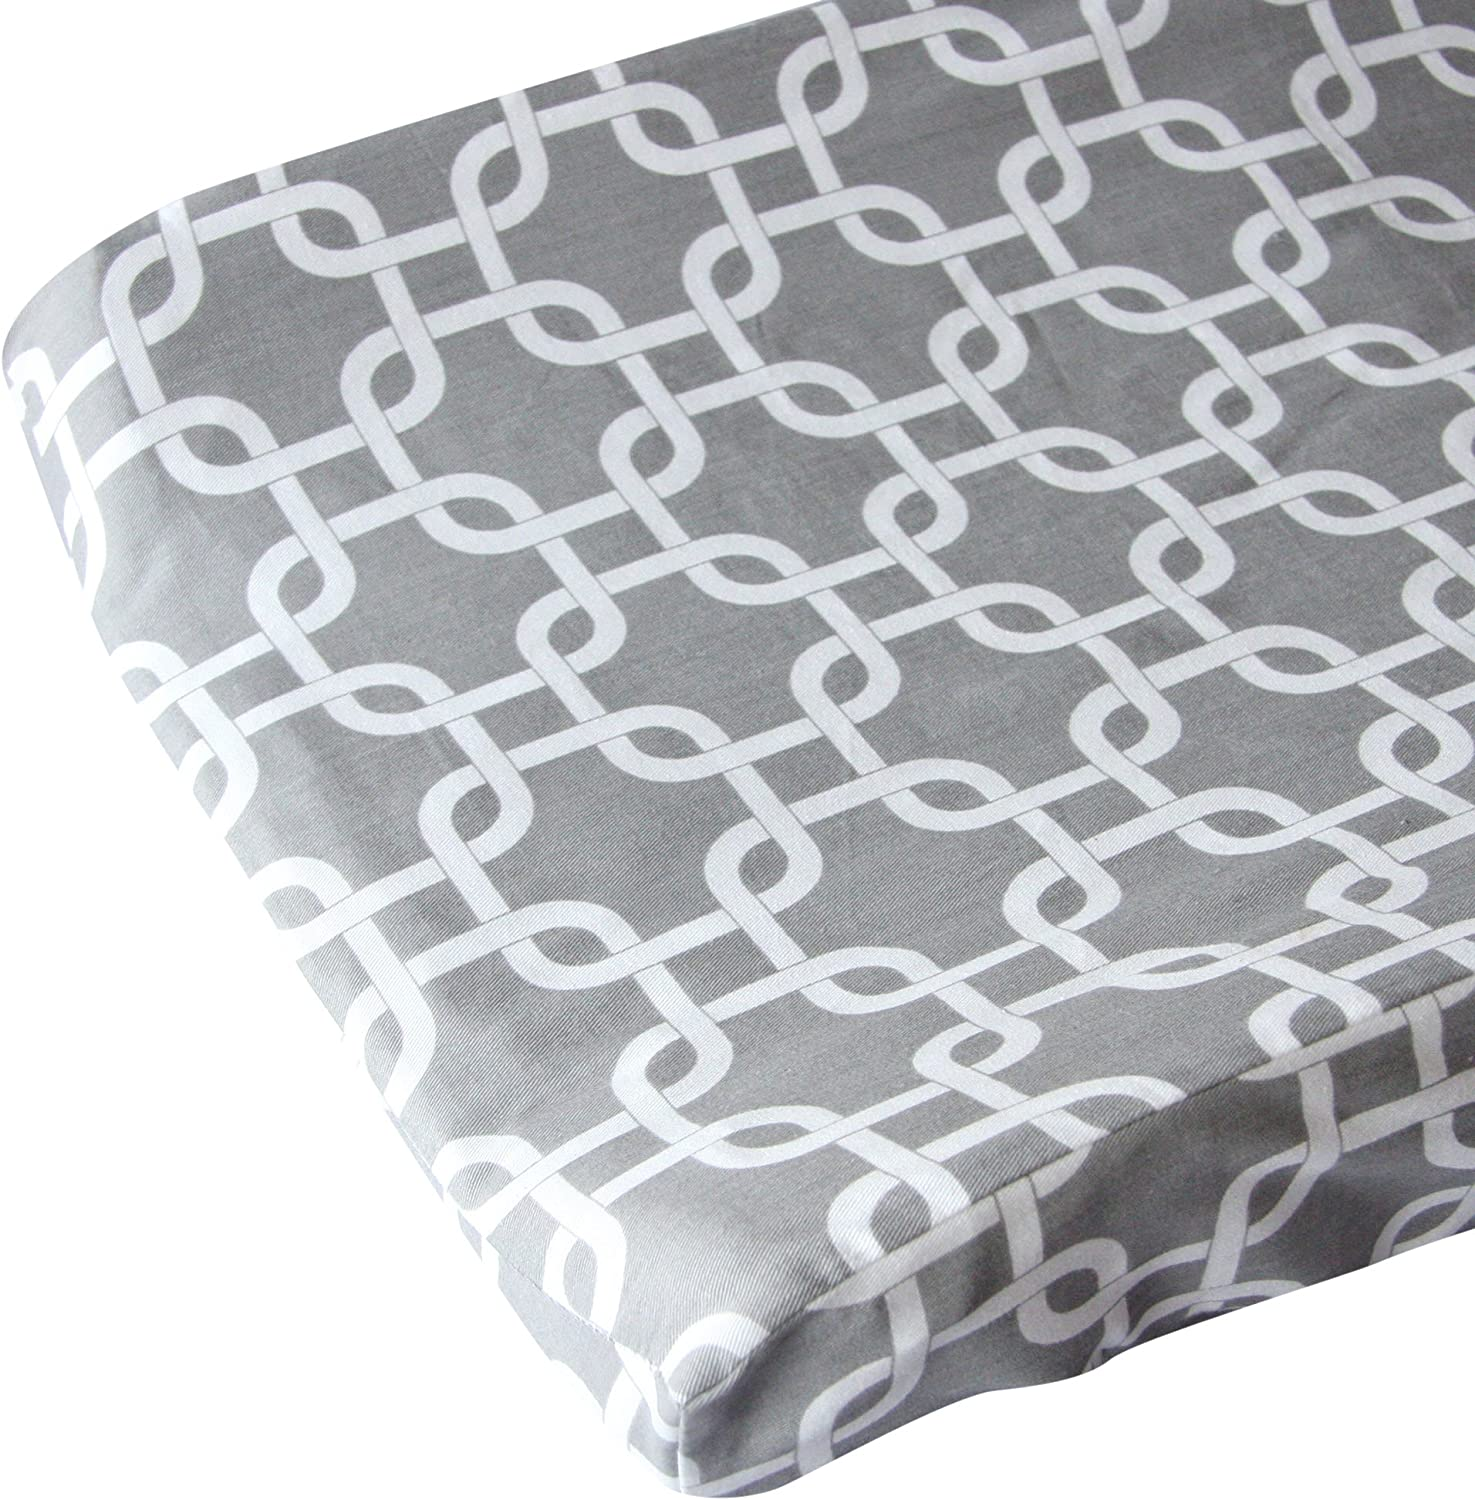 Caden Lane Changing Pad Cover, Gray Bright Baby by Caden Lane